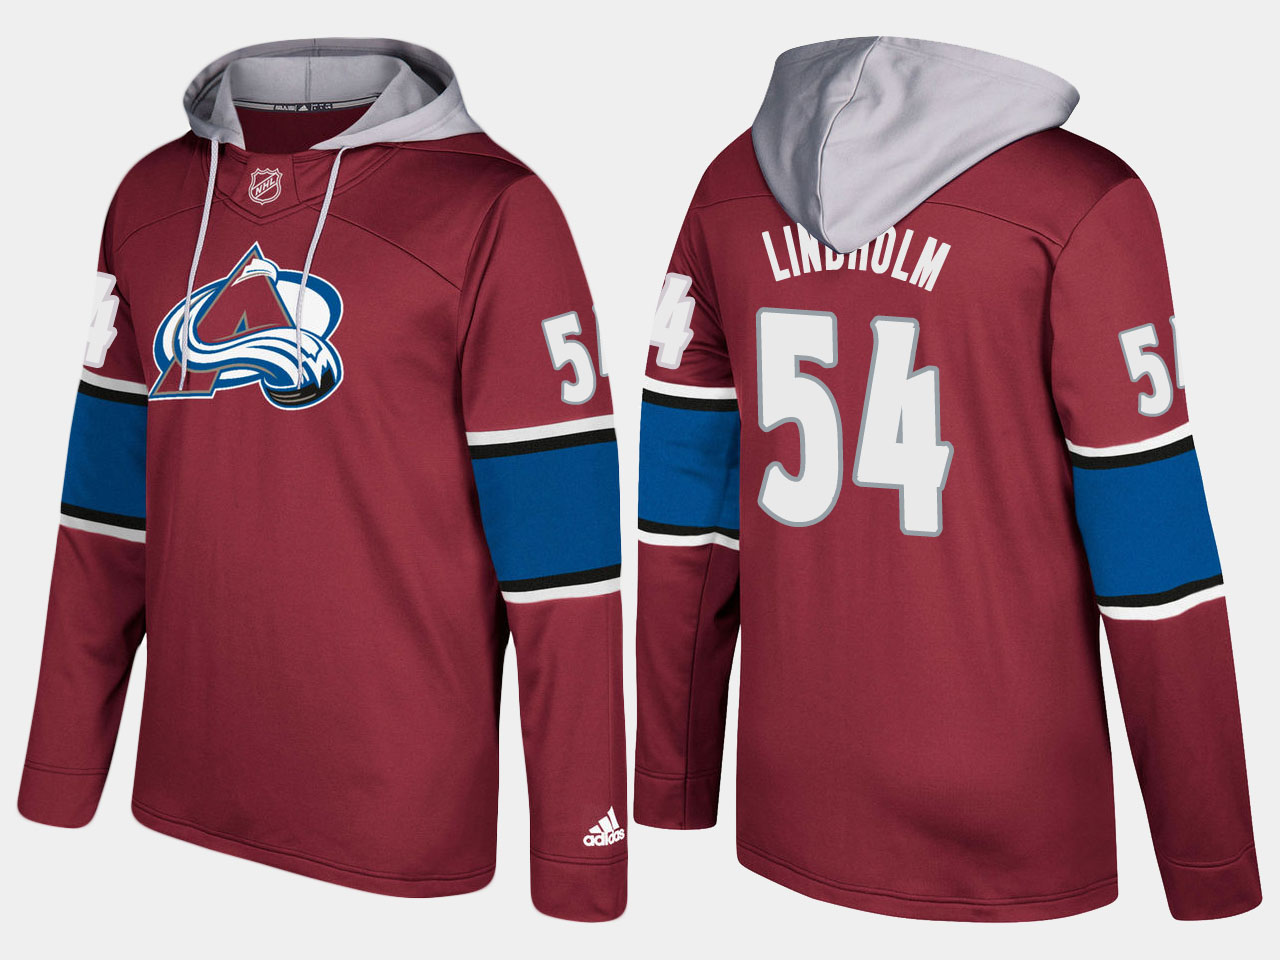 Men NHL Colorado avalanche 54 anton lindholm burgundy hoodie